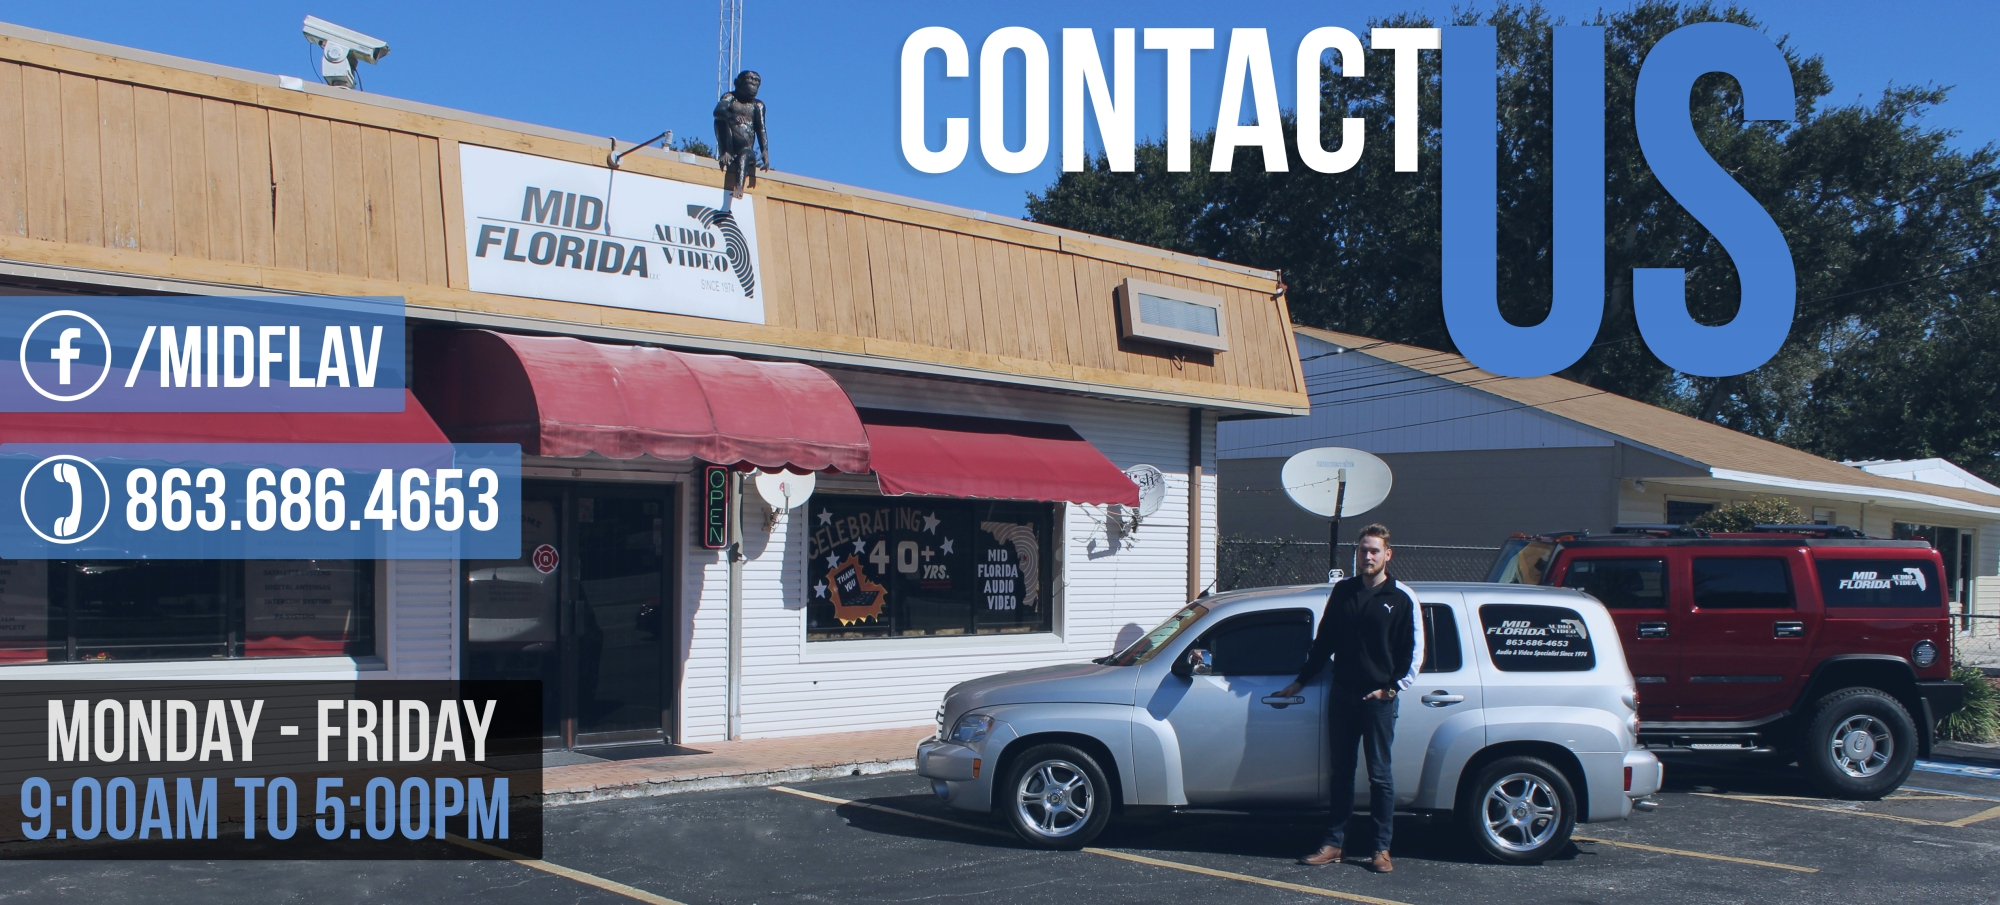 Contact Mid Florida Audio & Video